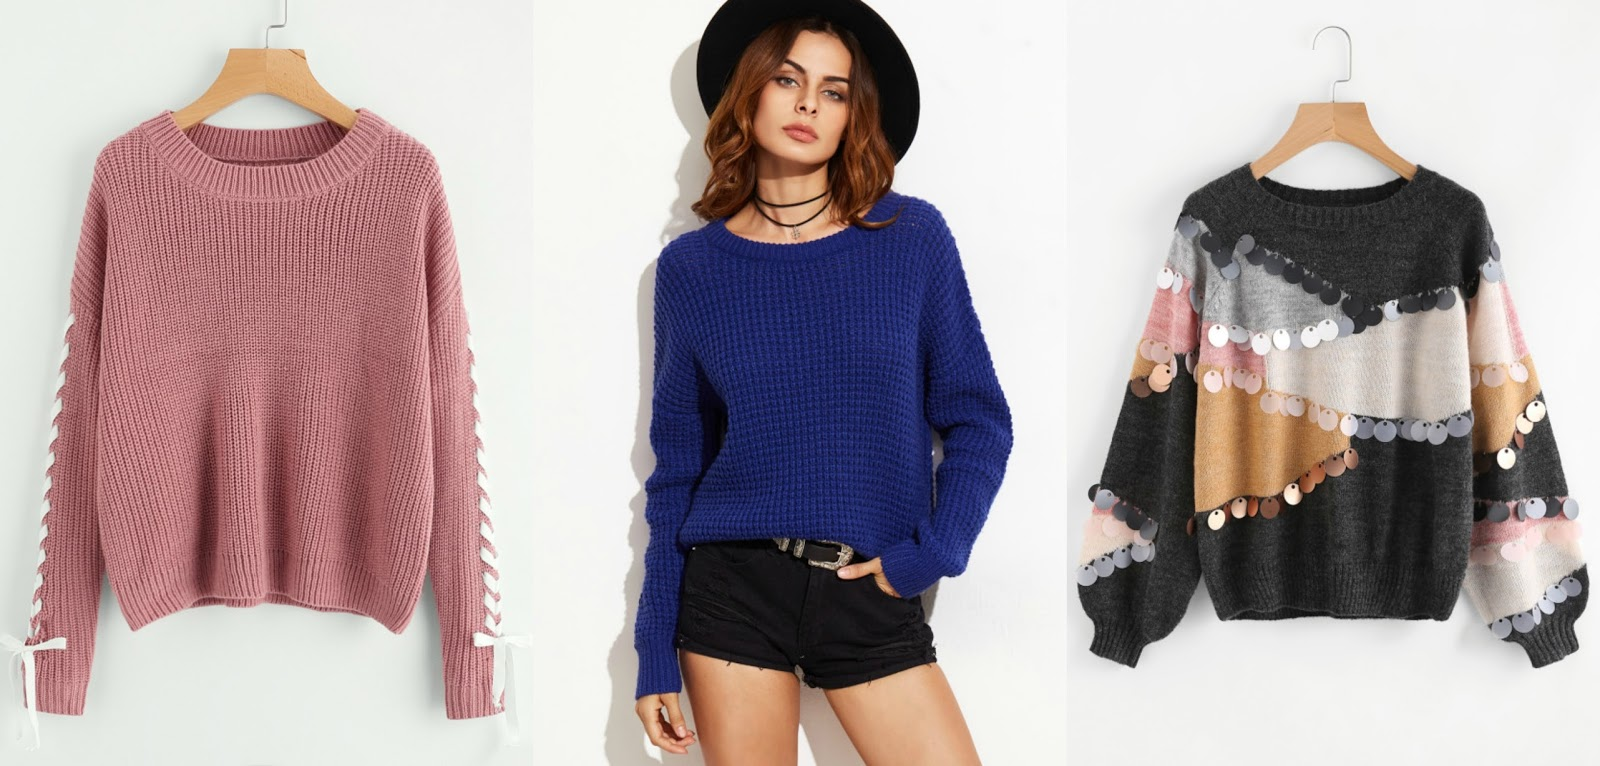 841d1c68bc6d ... you my fave pics from the website so far, that I know will go perfectly  with your cozy wardrobe yet still make your outfit look even more stylish.